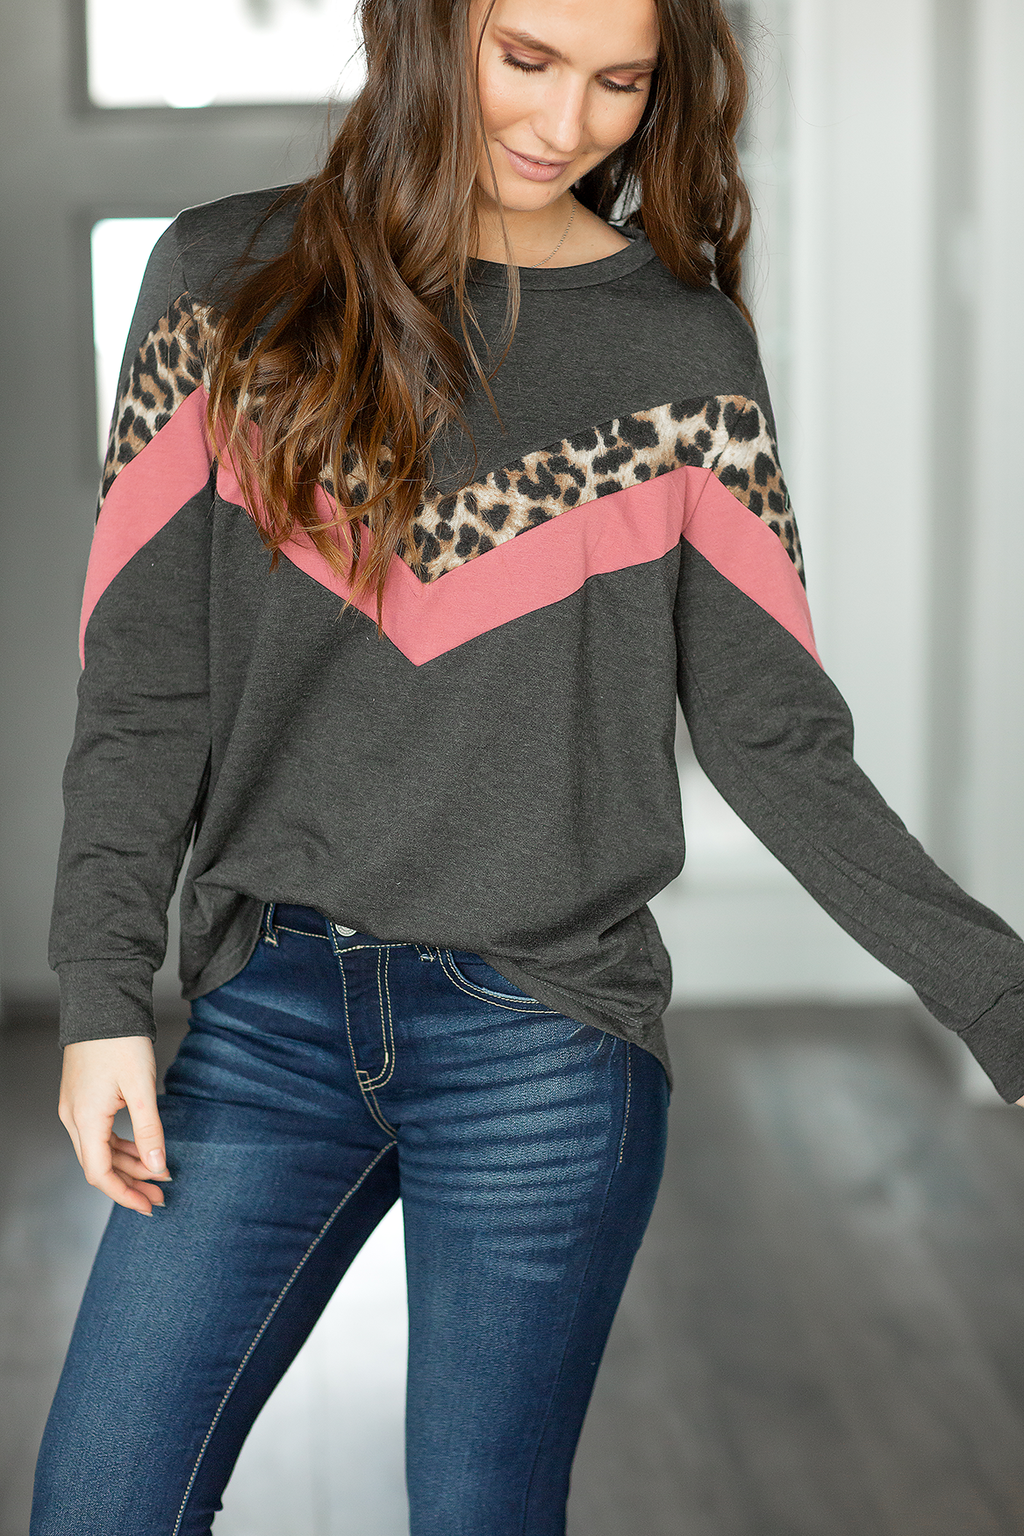 Always Thoughtful Charcoal Top with Animal Print and Pink (SALE)